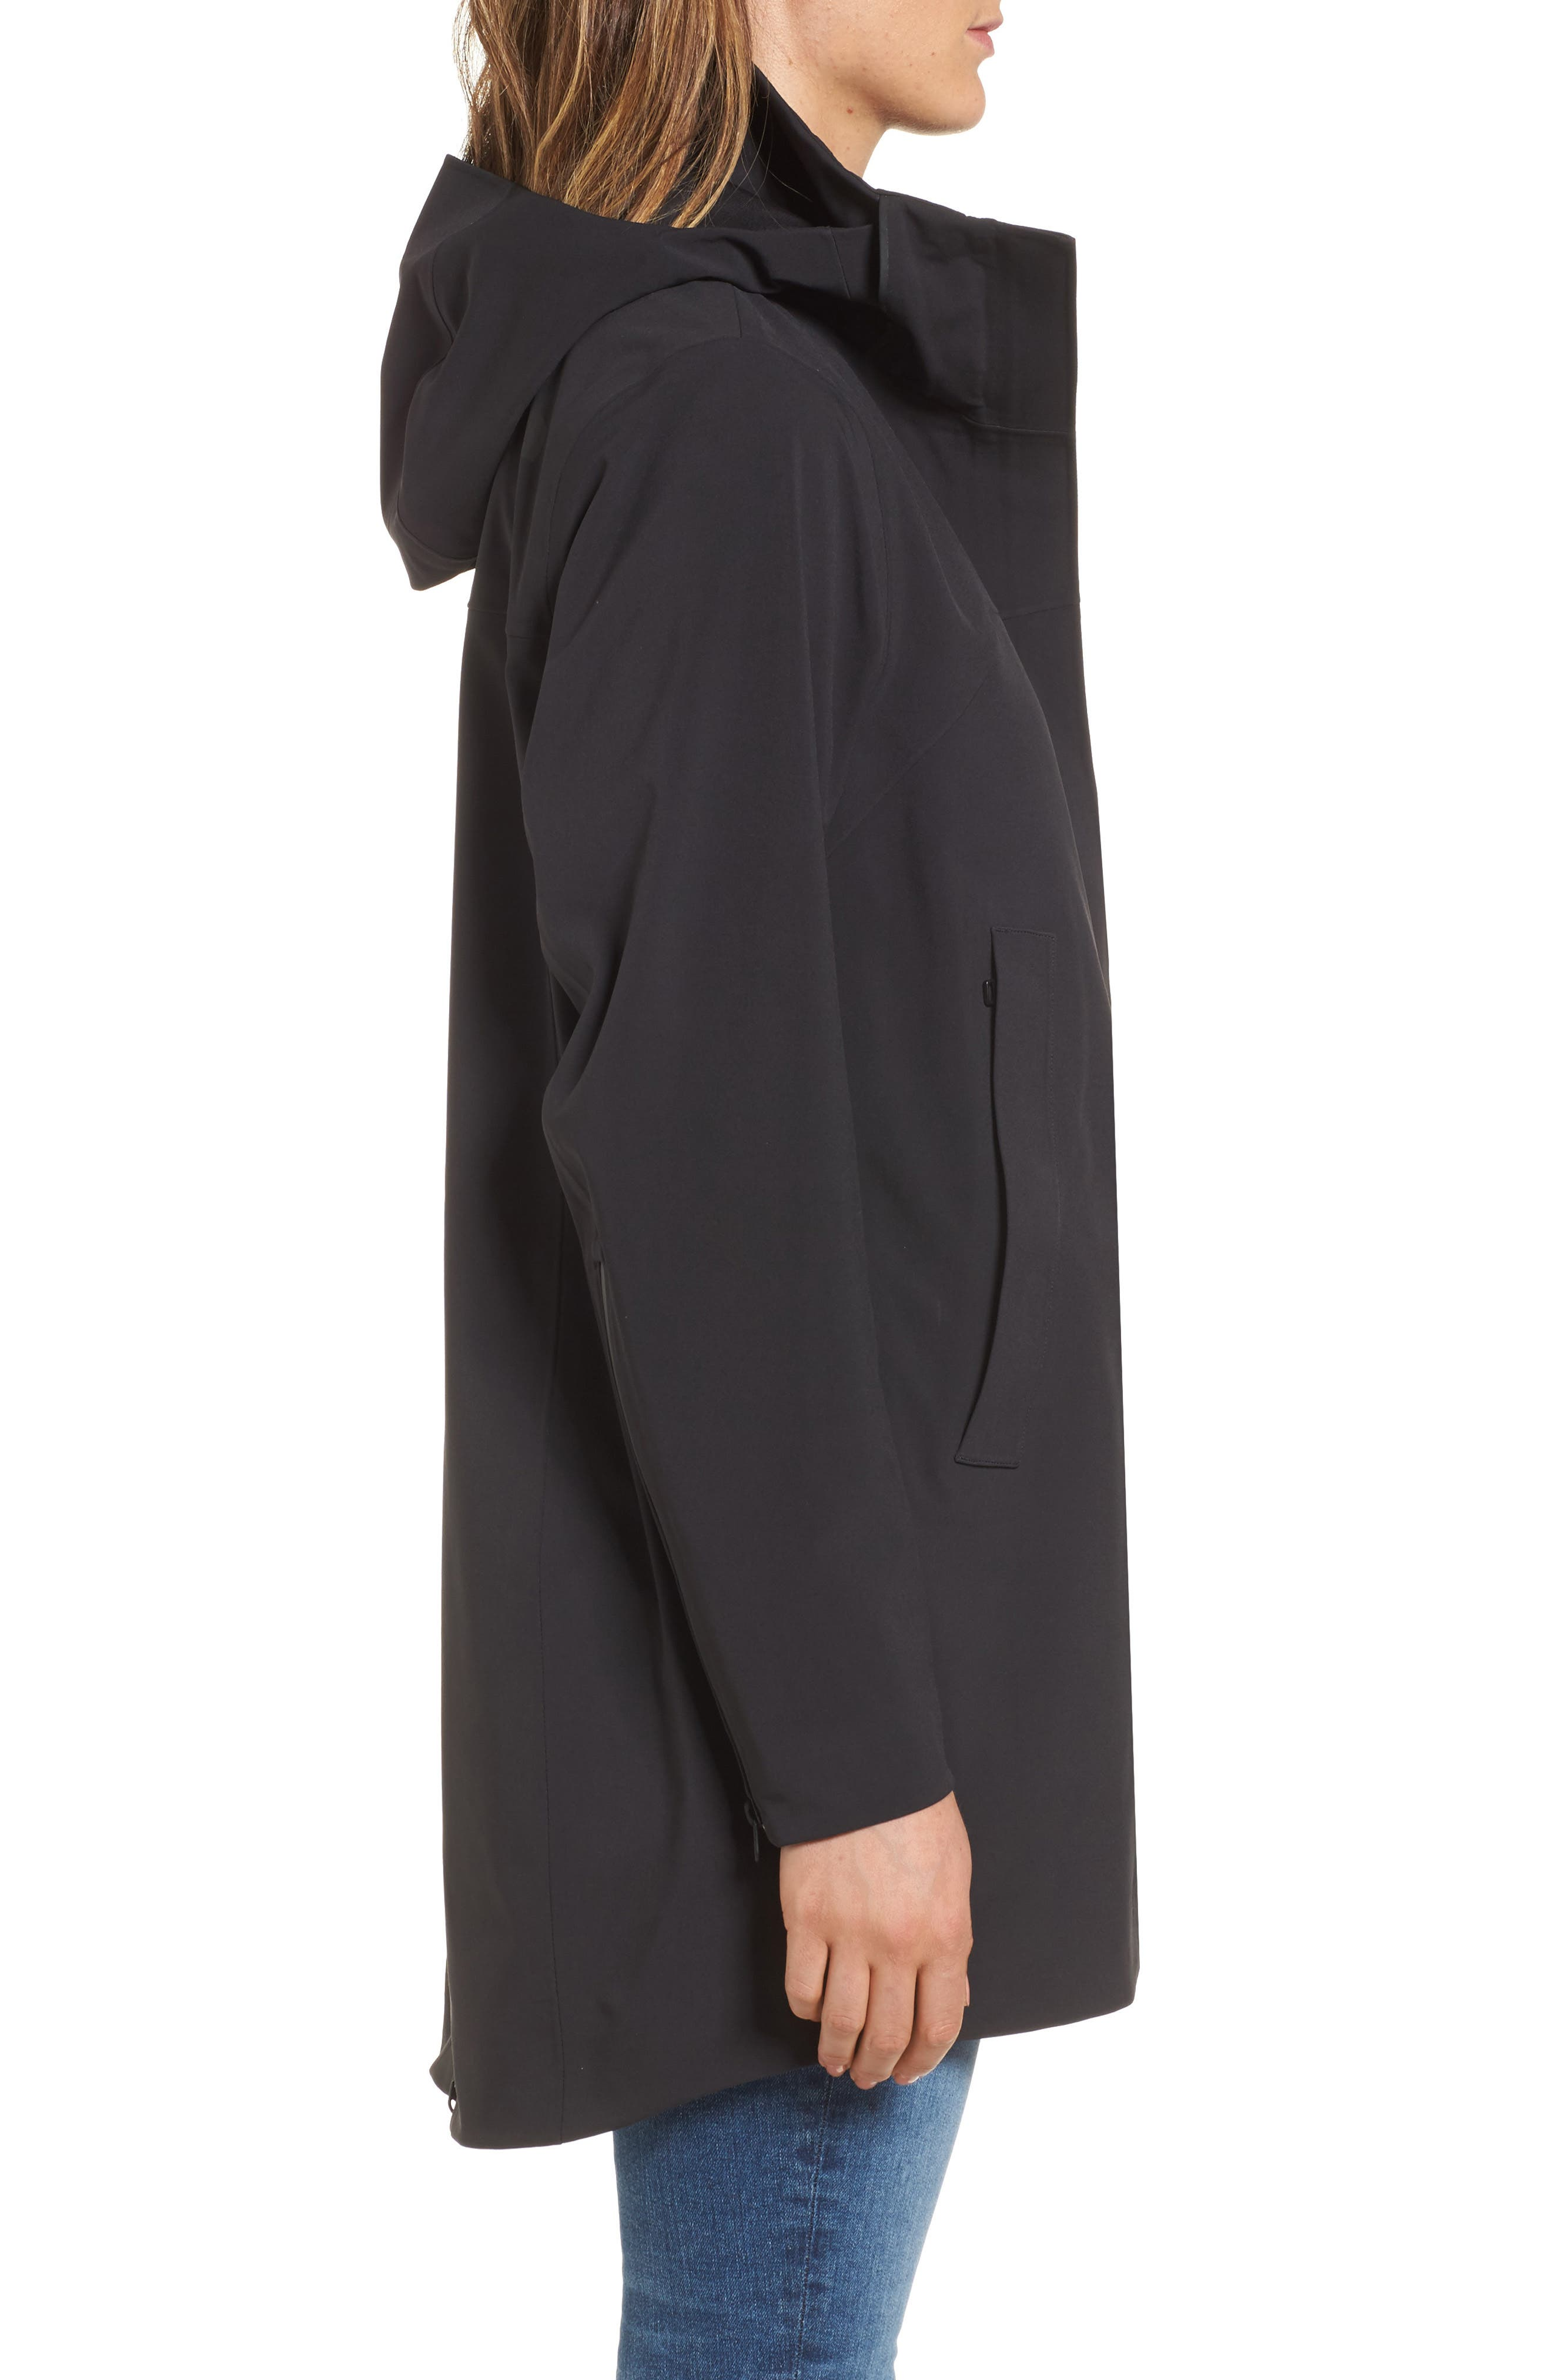 THE NORTH FACE, Apex Flex Gore-Tex<sup>®</sup> Trench Coat, Alternate thumbnail 4, color, BLACK